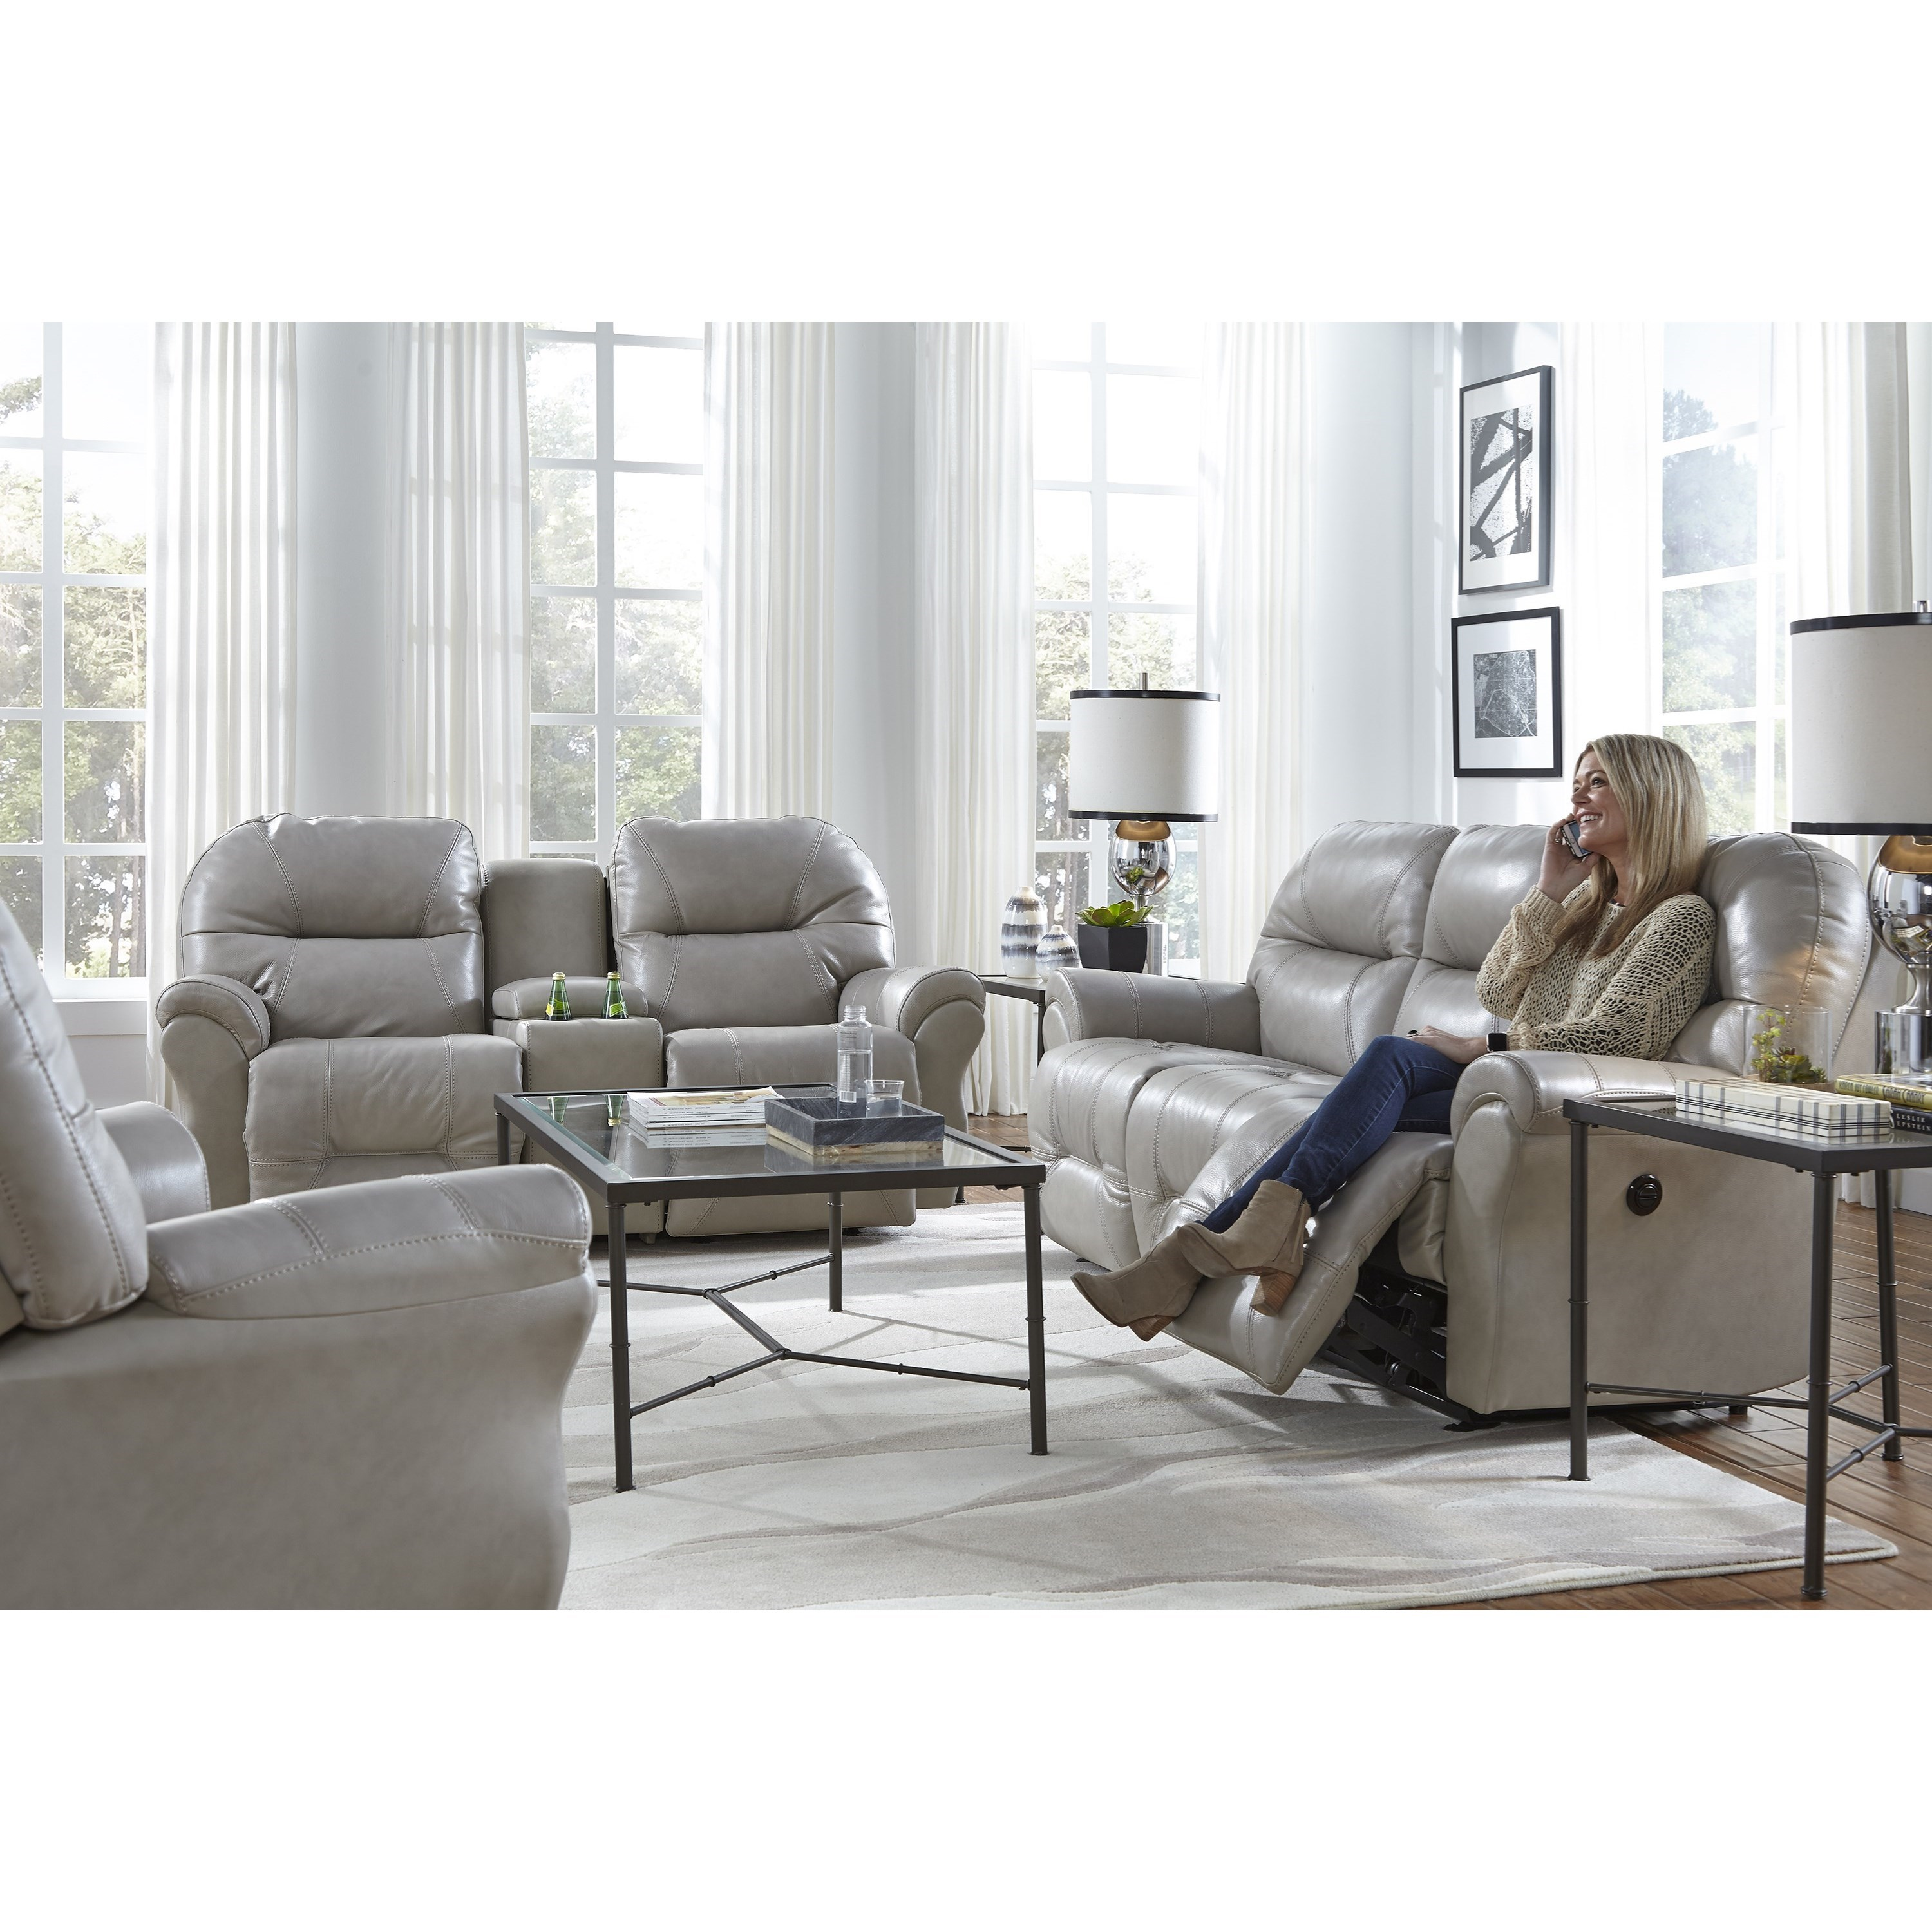 Bodie Reclining Living Room Group by Best Home Furnishings at Saugerties Furniture Mart